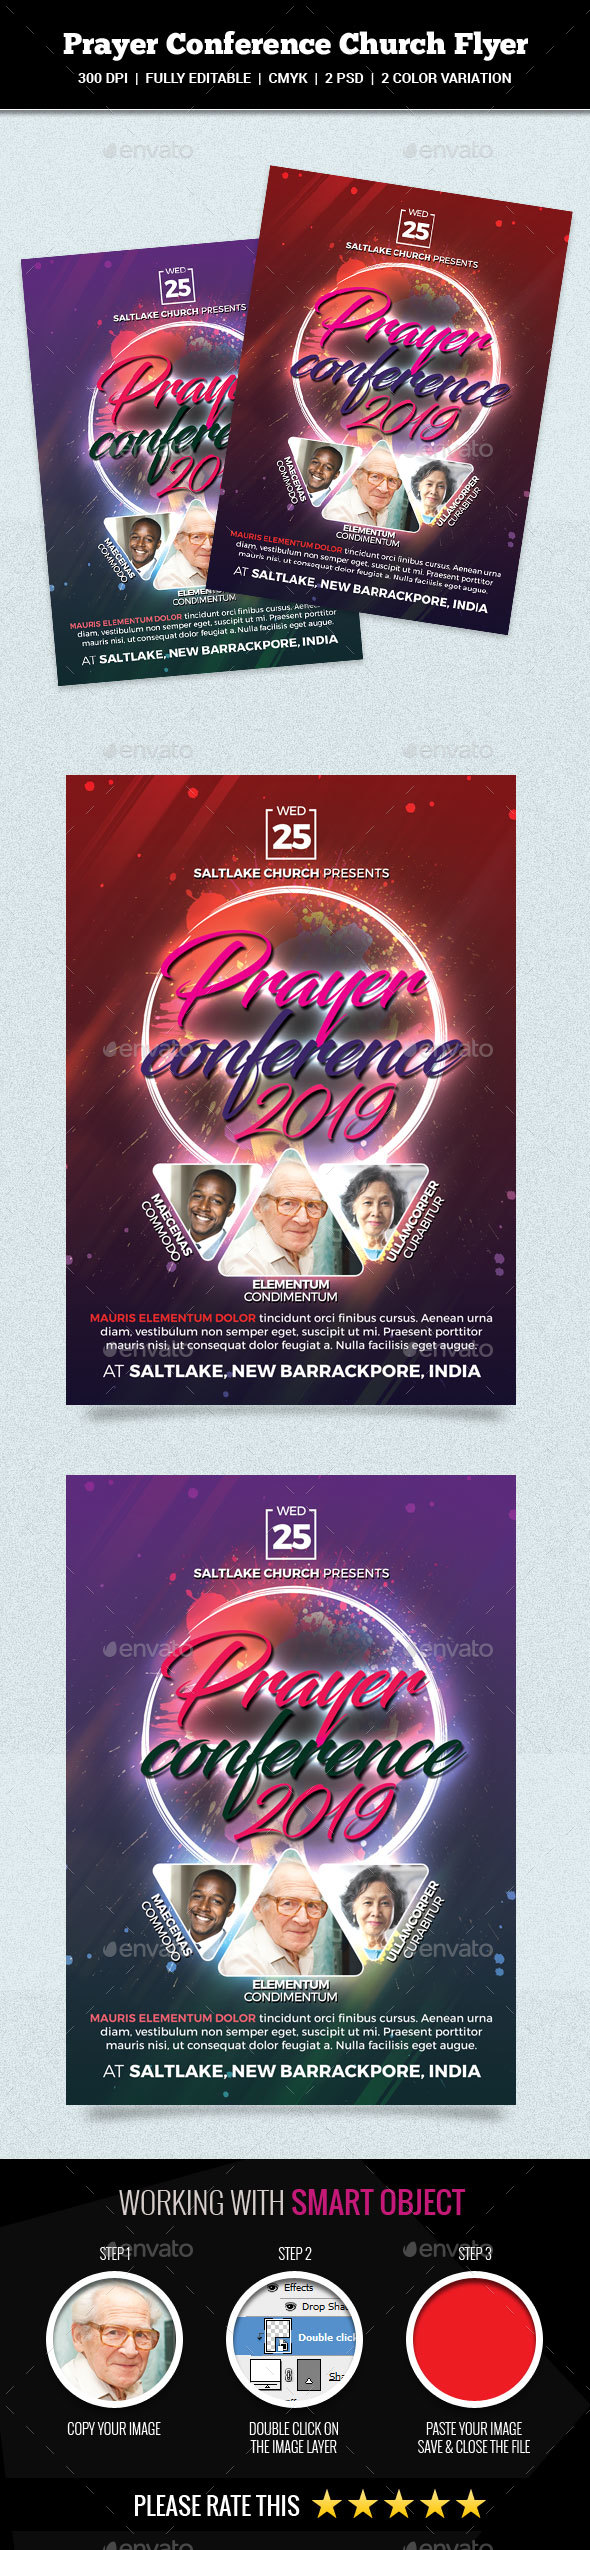 Prayer Conference Church Flyer - Church Flyers